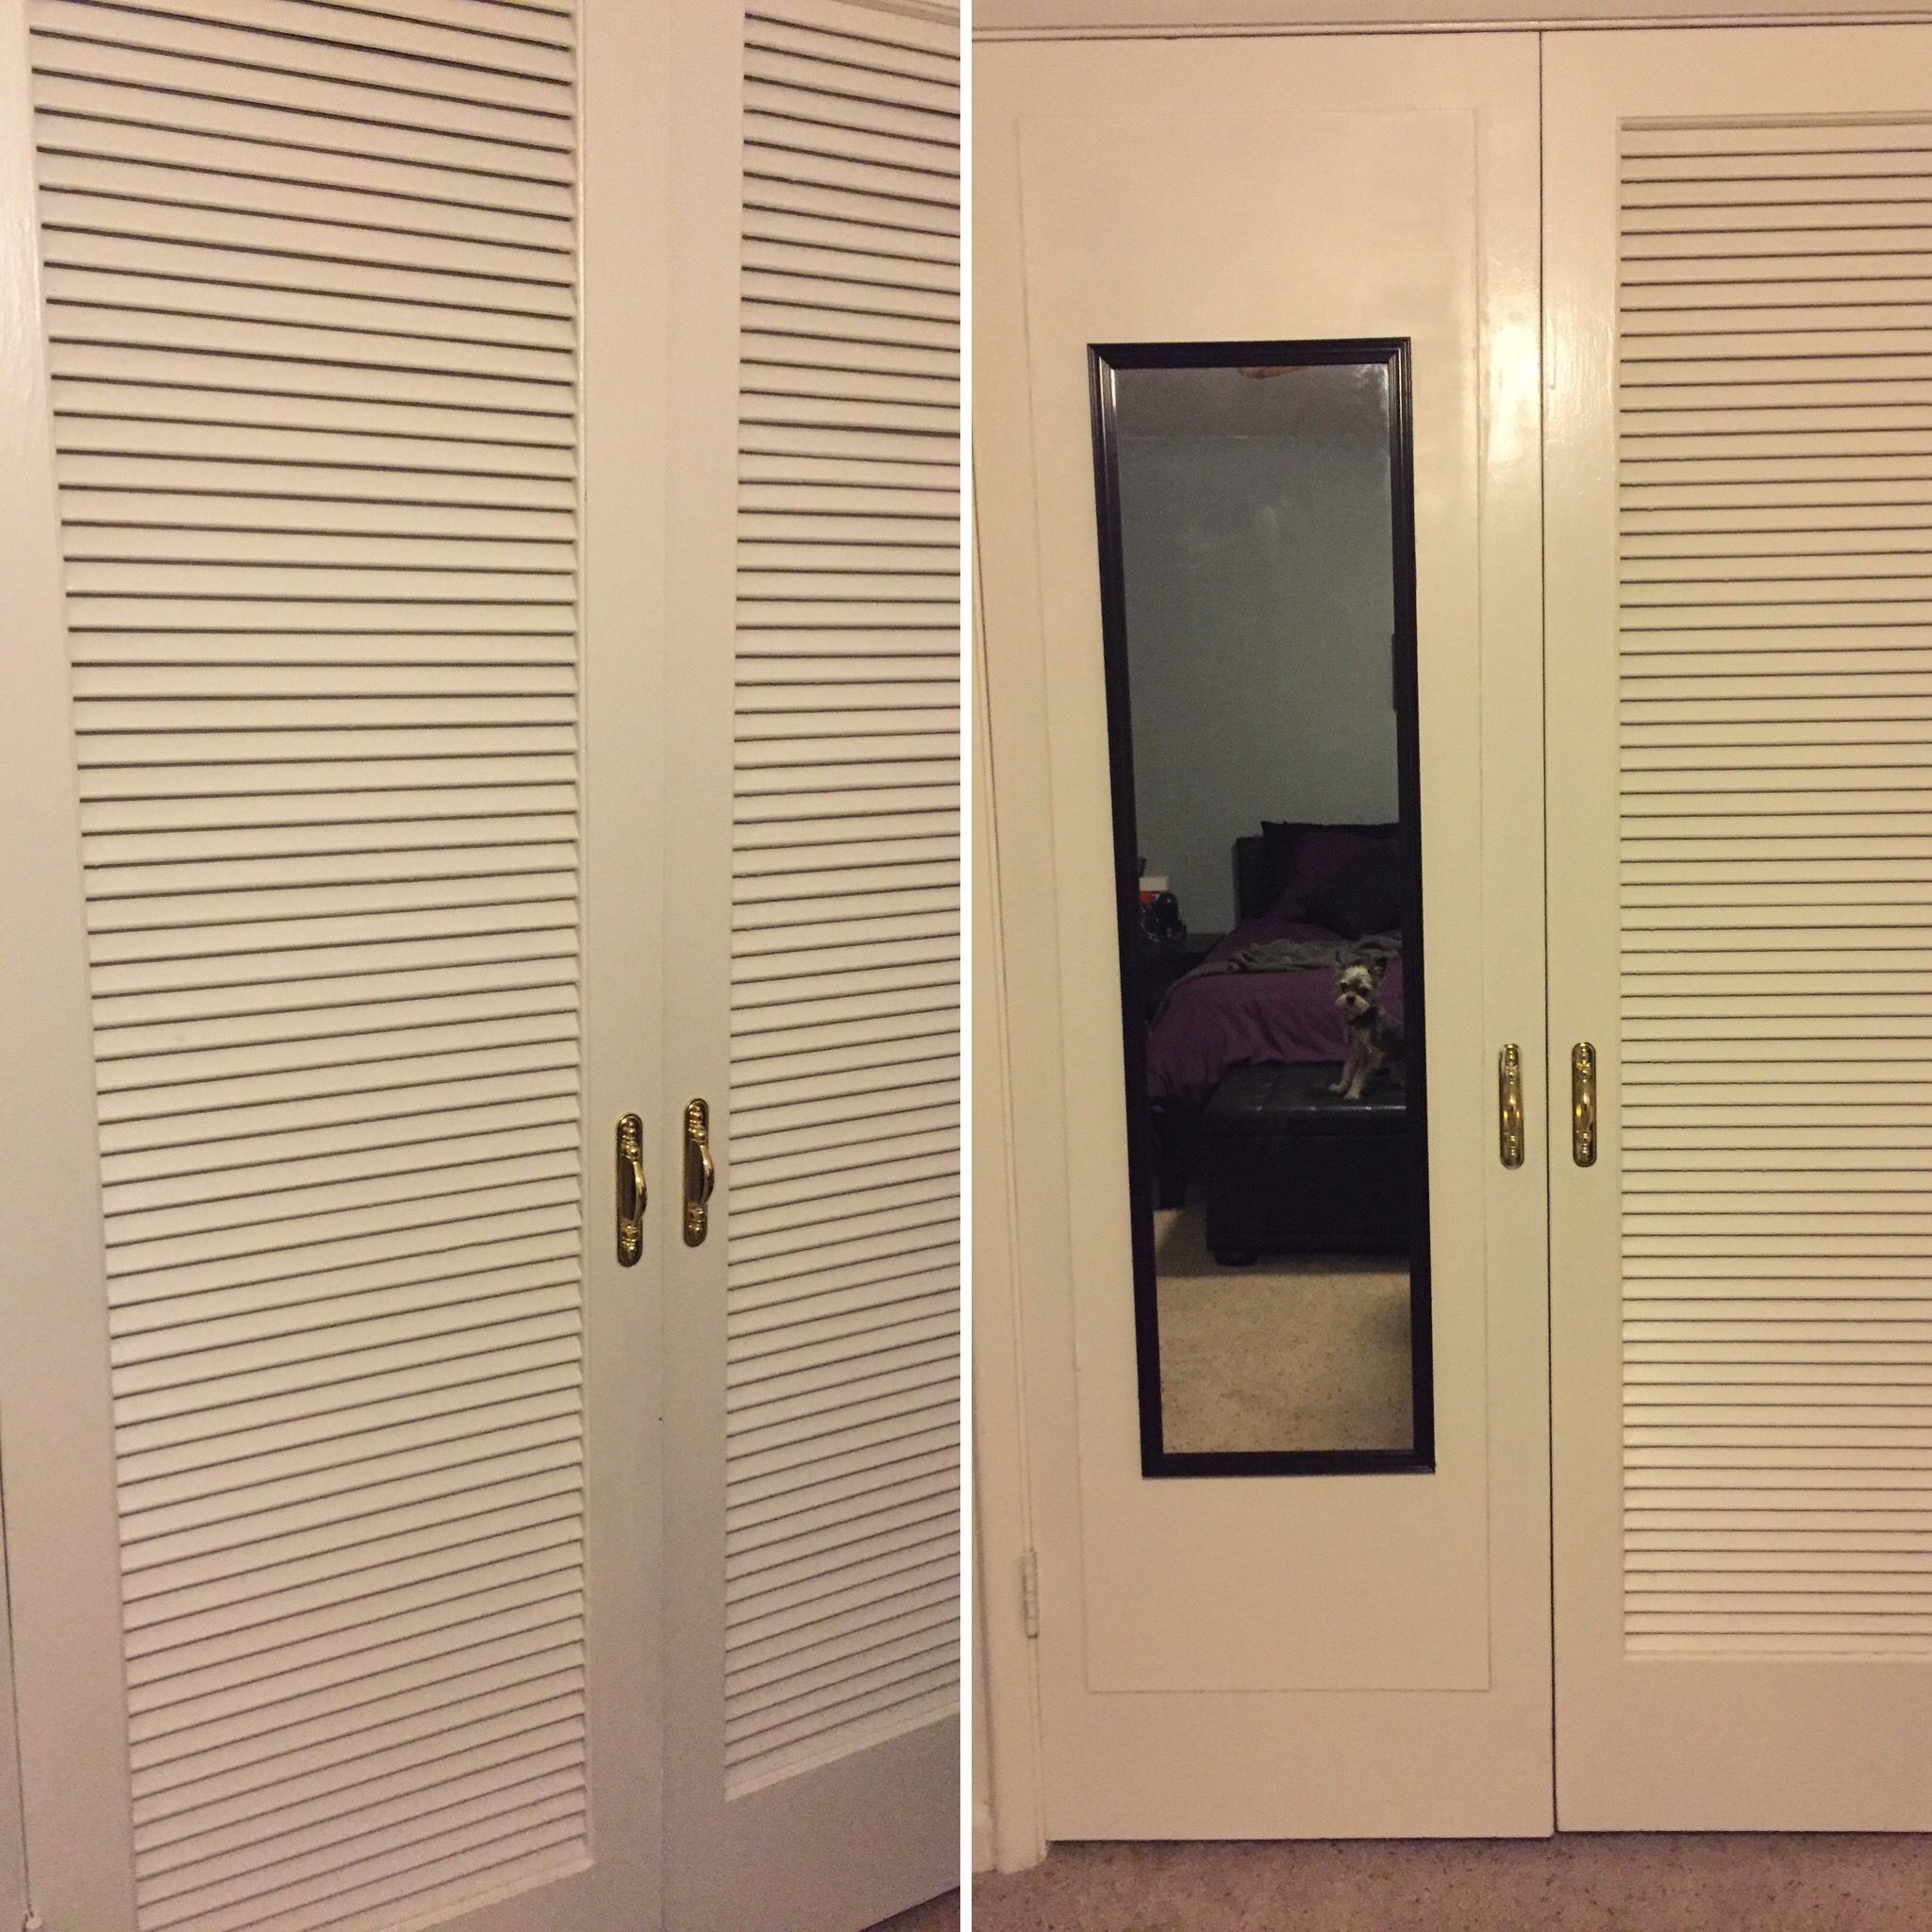 Diy Upgrade To Cover Slats On Closet Door With Thin Plywood New